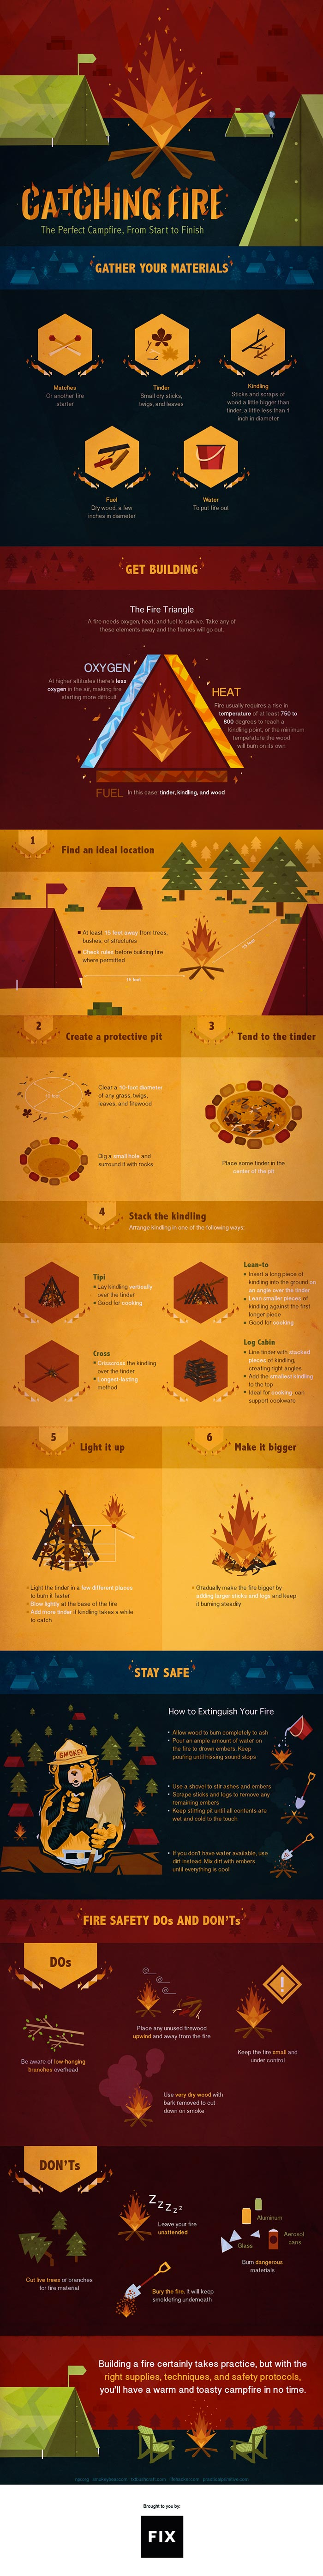 How to build a fire infographic